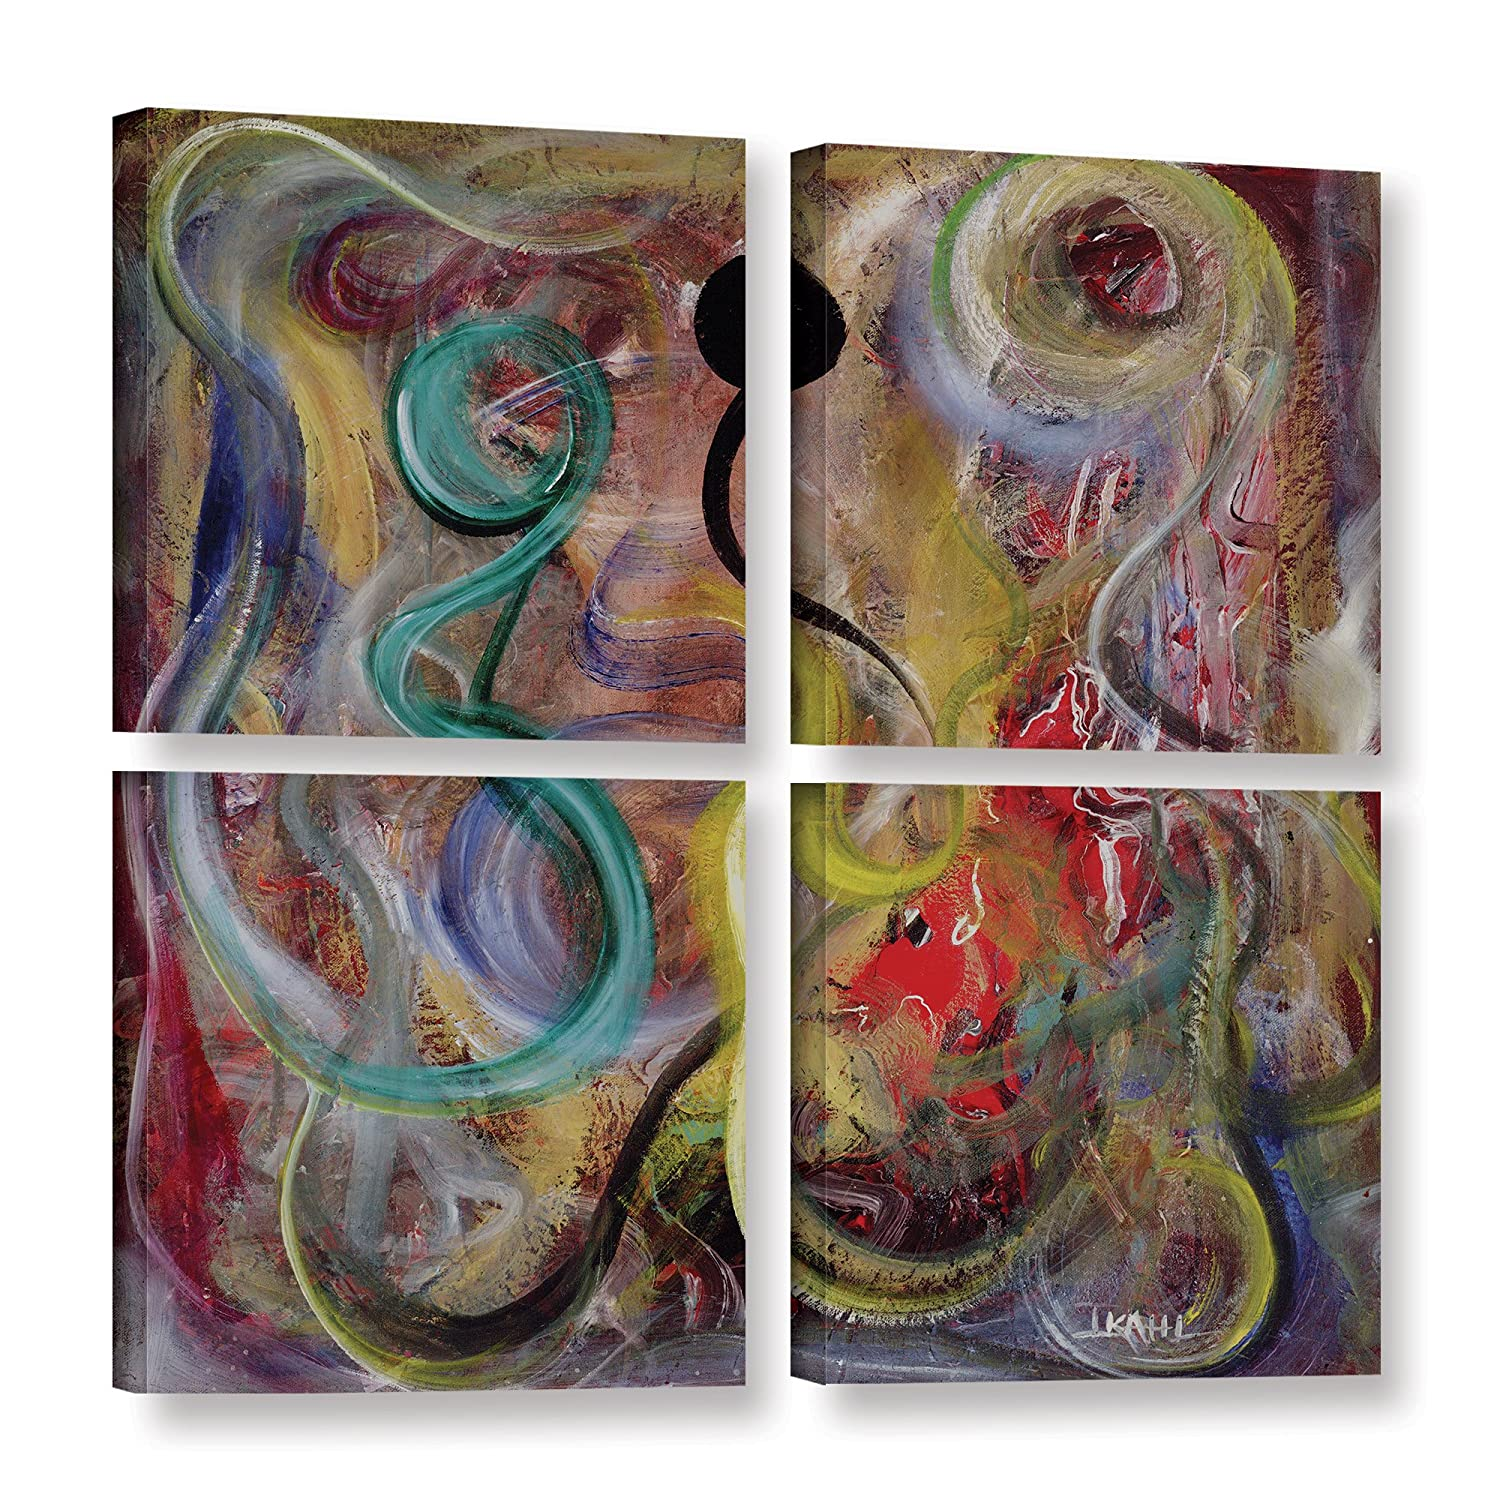 Ikahl Beckford Genesis 4 Piece Gallery Wrapped Canvas Square Set 48X48